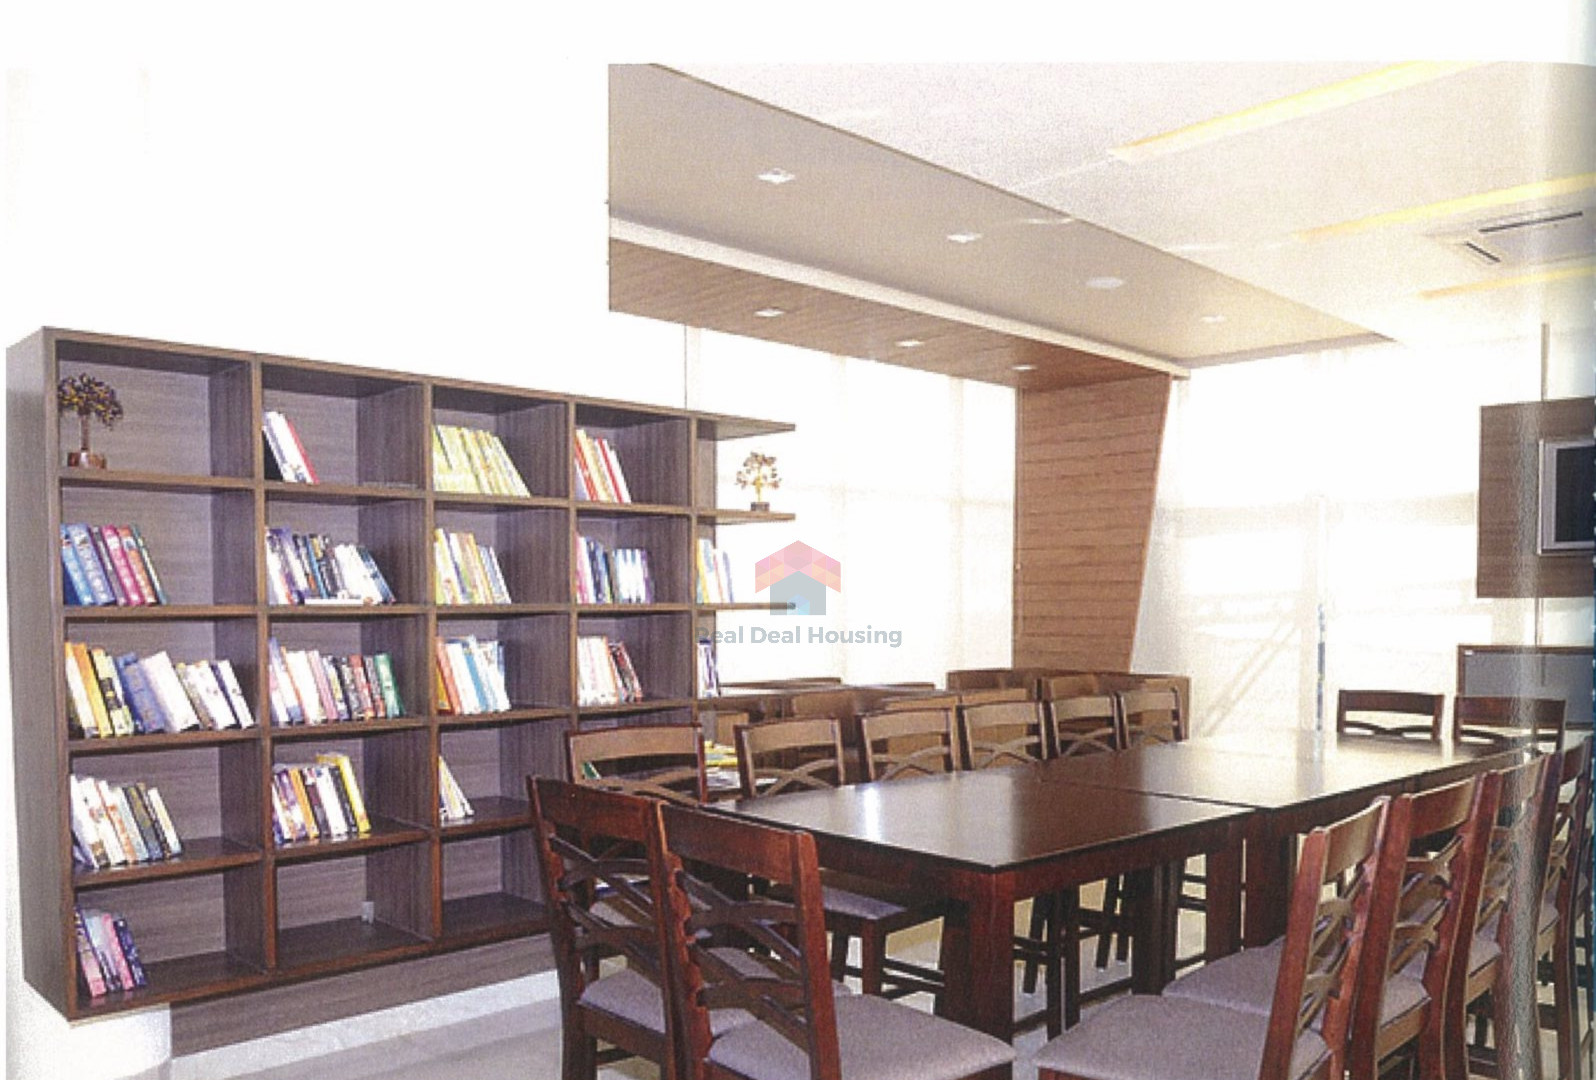 imperial_heights_library.jpg